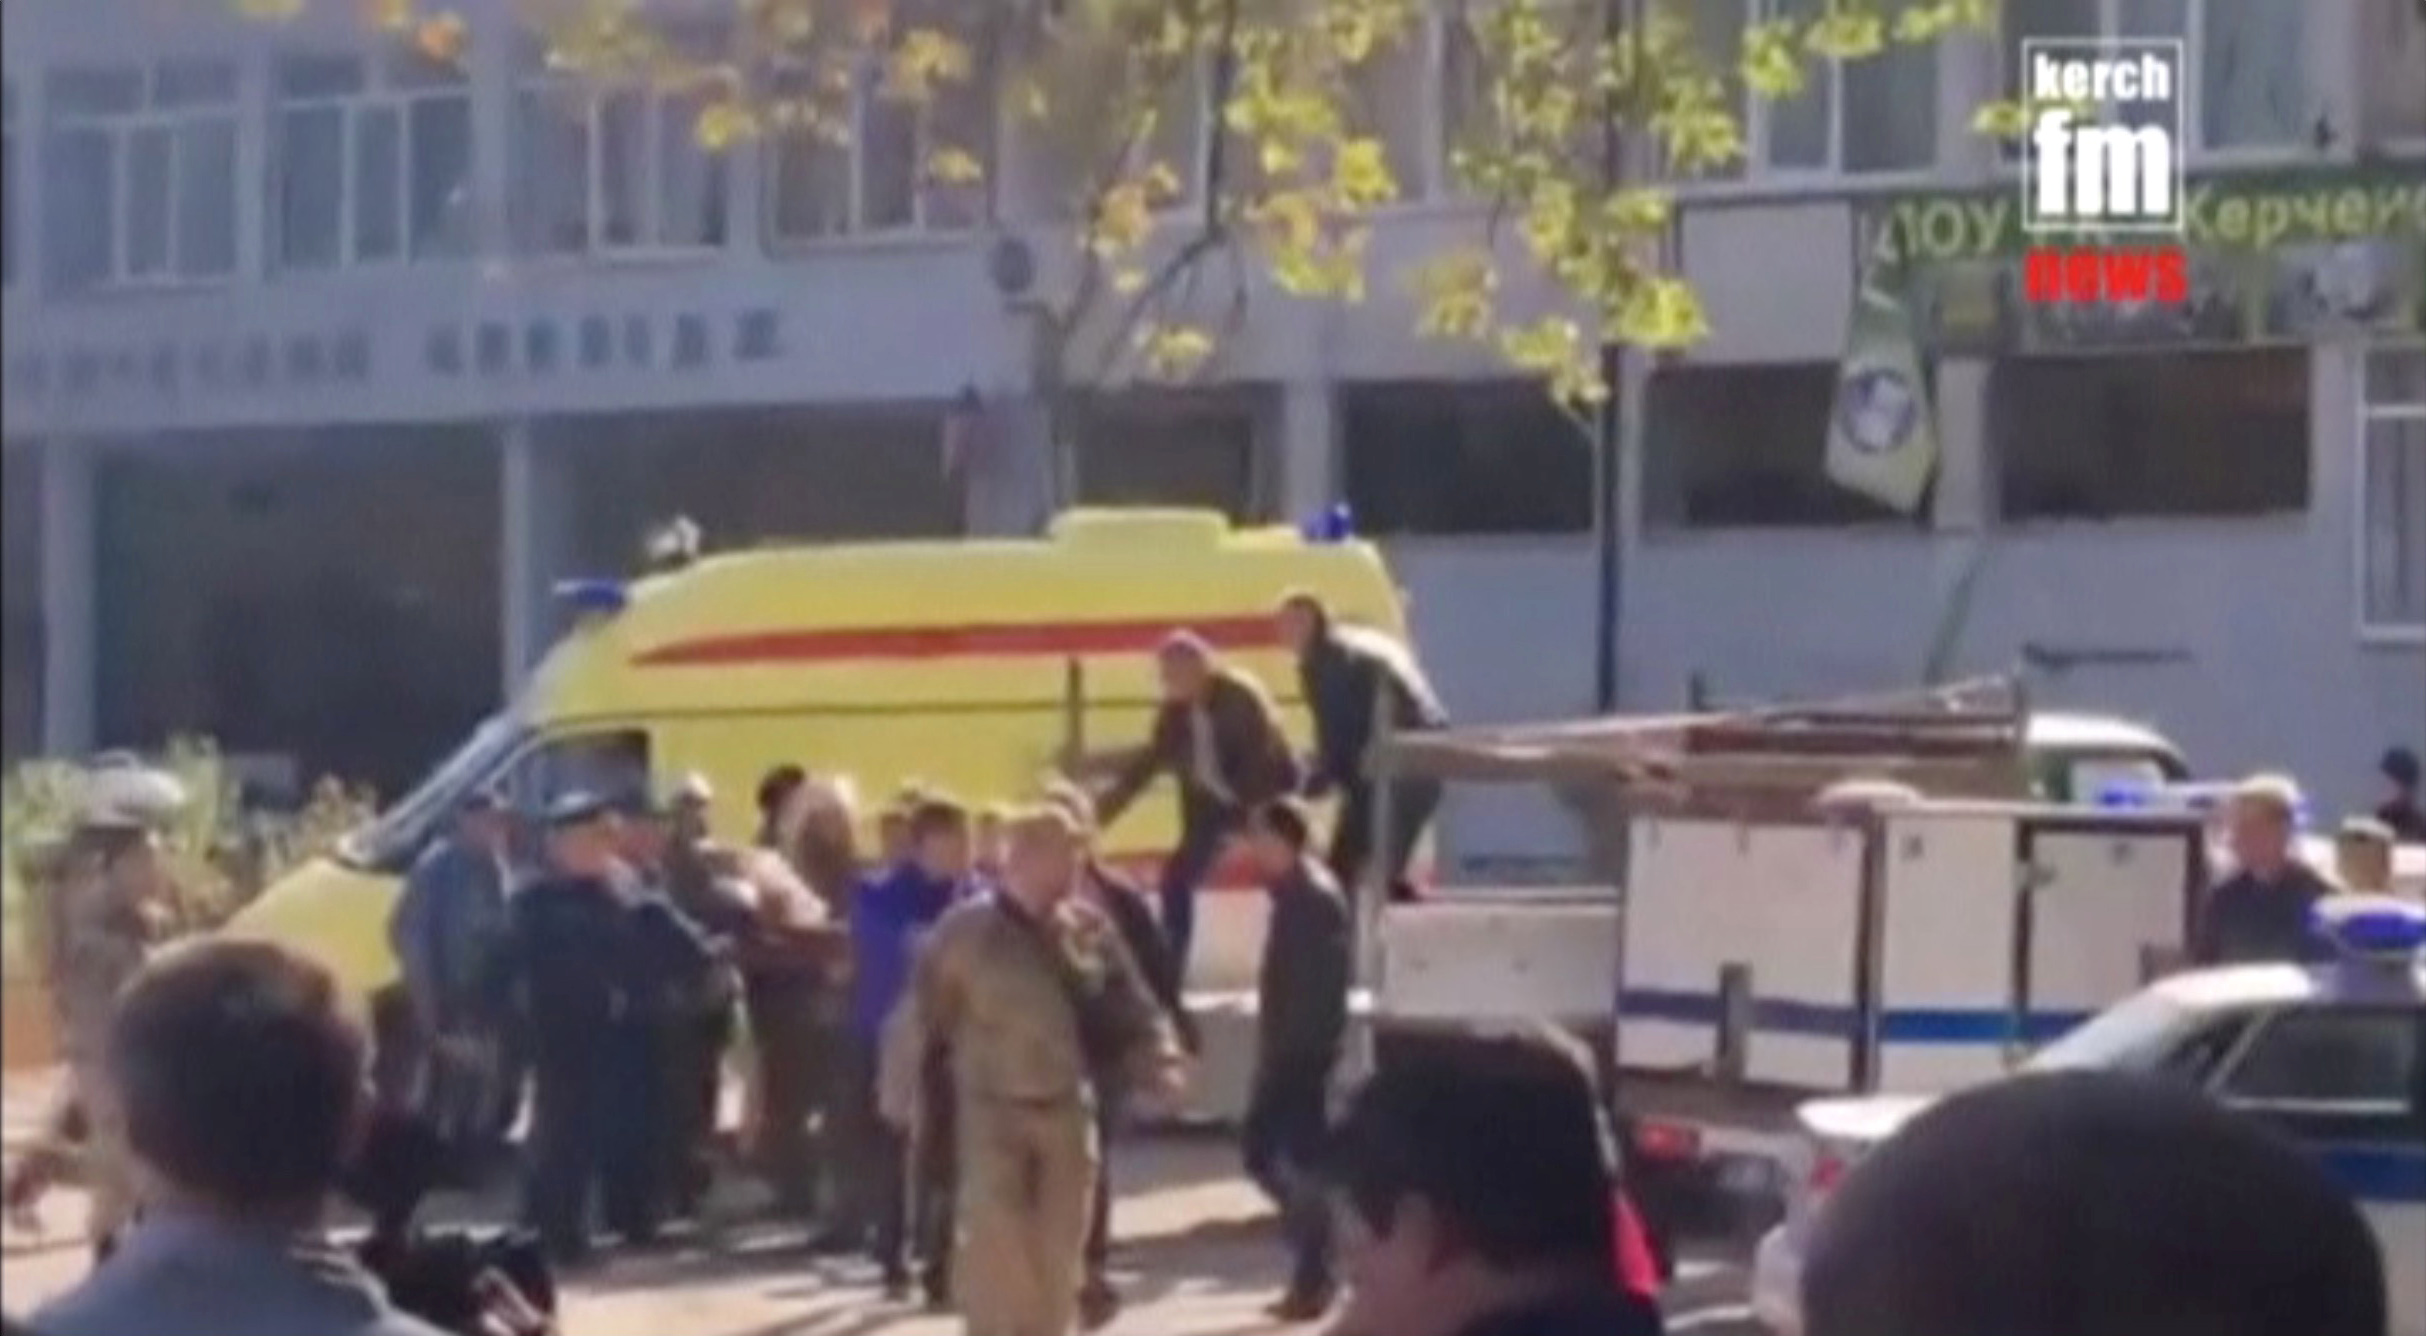 Emergency services carry an injured victim of a blast at at a college in the port city of Kerch, Crimea in this still image taken from a video on October 17, 2018. Kerch.FM/Handout via REUTERS TV ATTENTION EDITORS - THIS PICTURE WAS PROVIDED BY A THIRD PARTY. NO RESALES. NO ARCHIVES - RC1D0DC98200